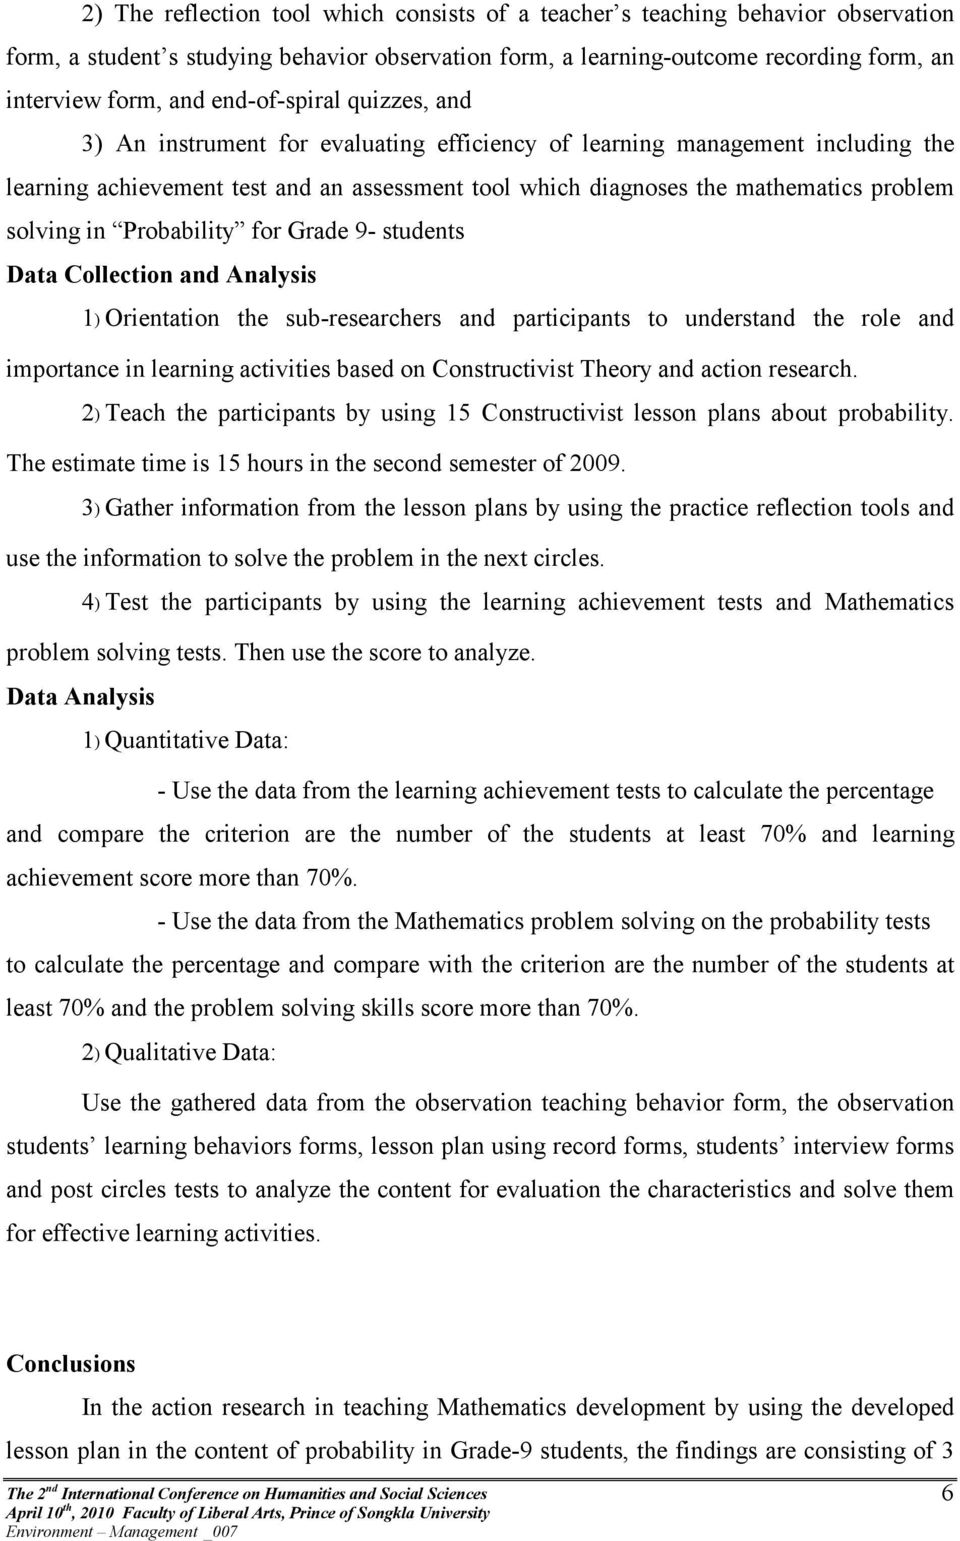 The development of mathematics learning activities based on